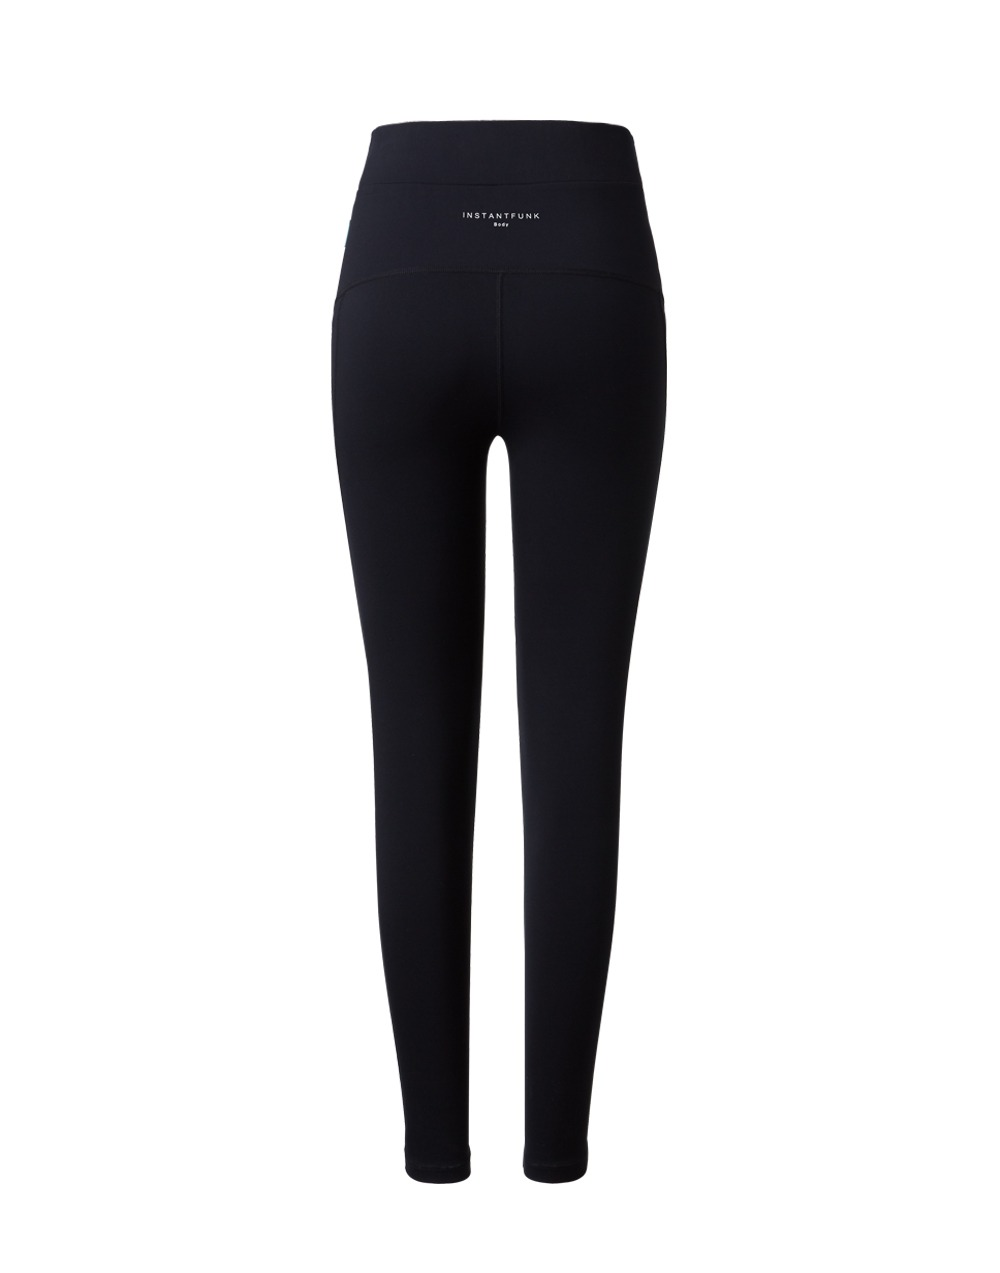 Volume Leggings 01 - Black